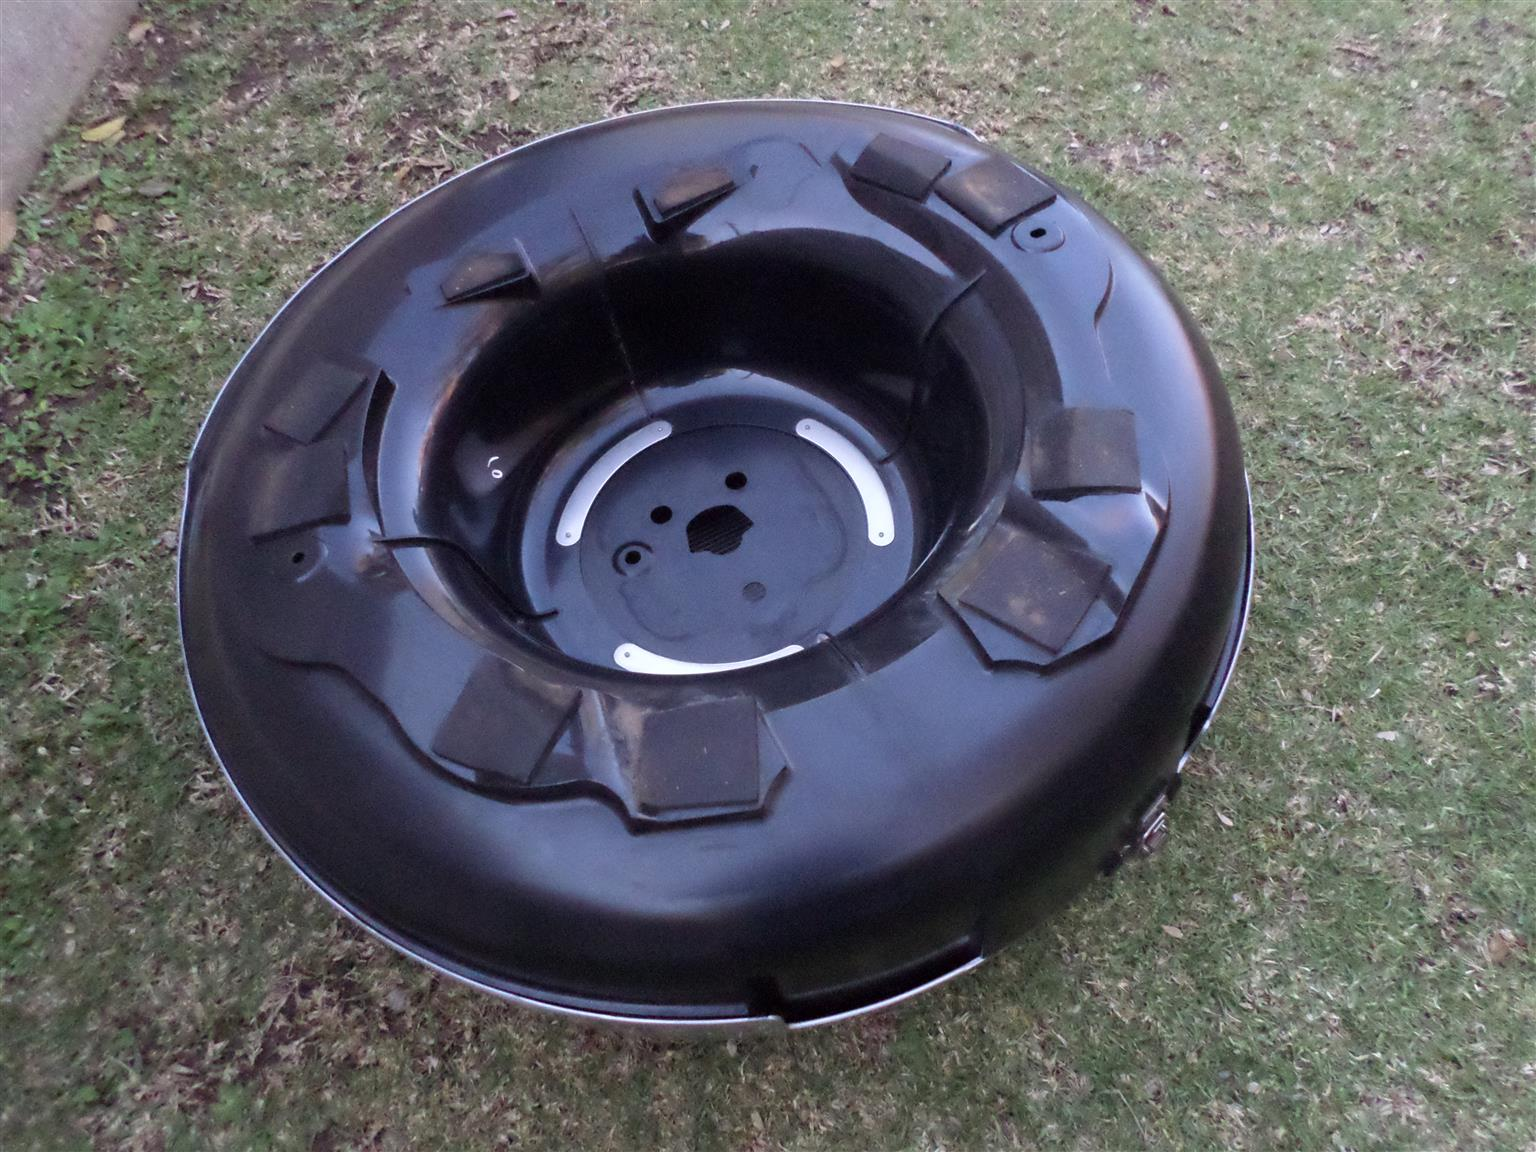 2012 TOYOTA RAV4 COMPLETE SPARE WHEEL COVER FOR SALE. VERY CLEAN